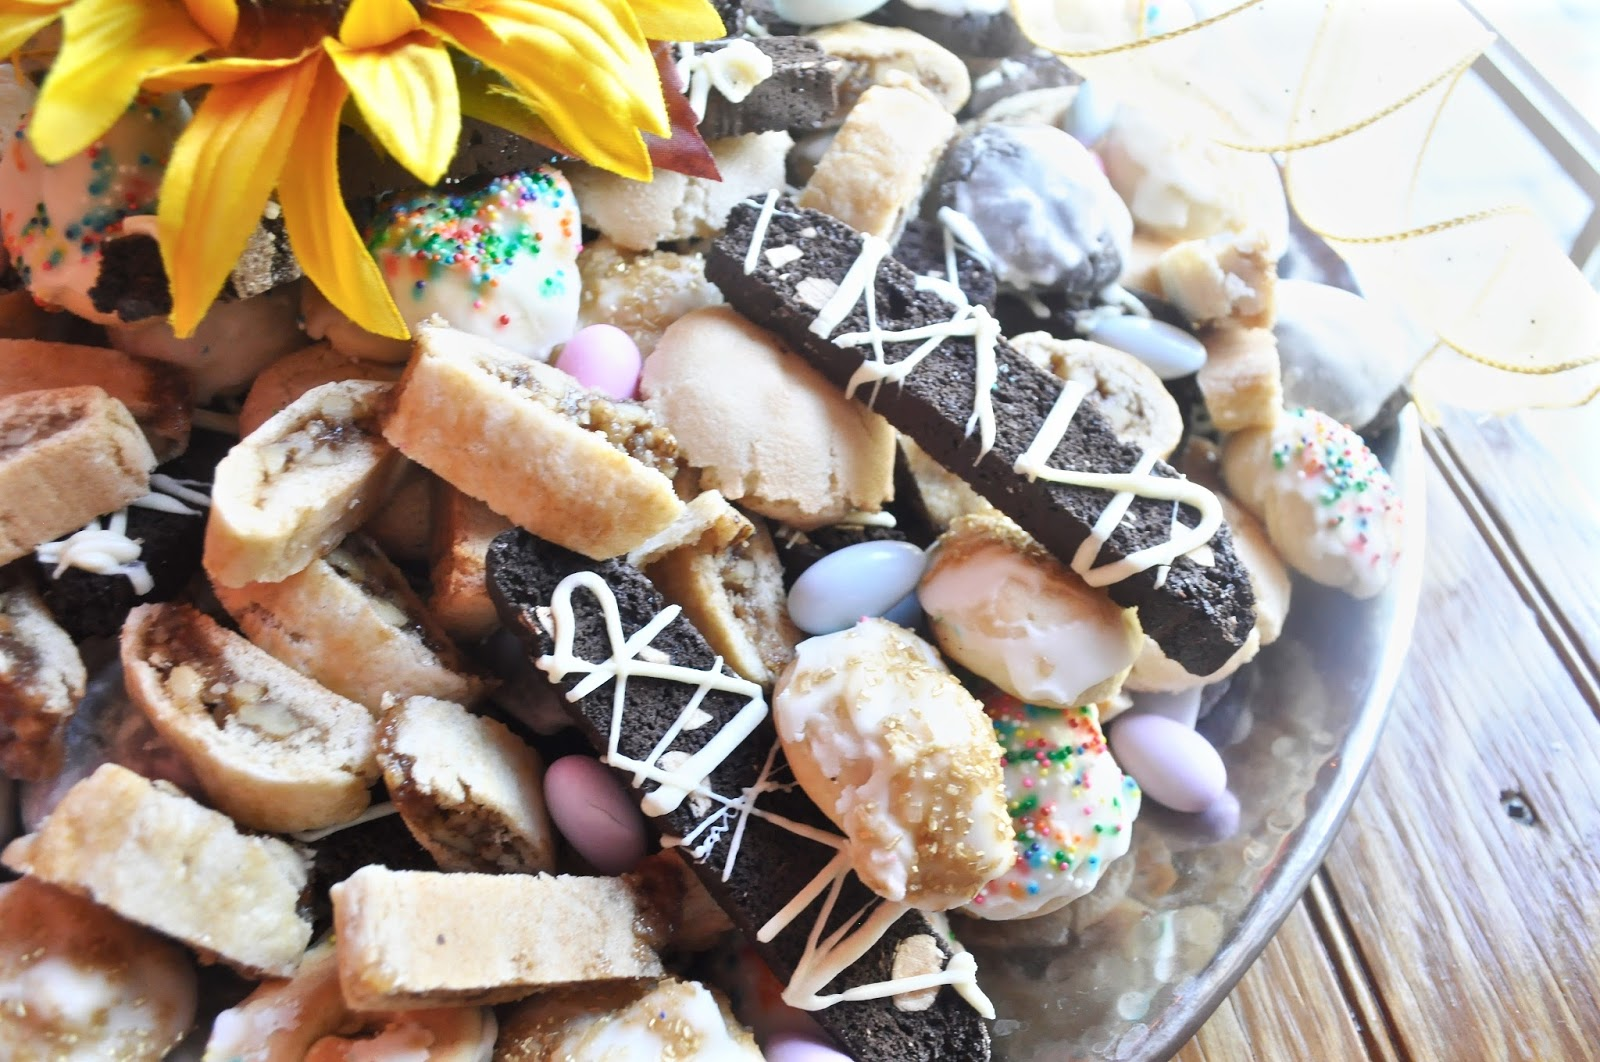 I Never Got Around To Making The Bocconotti For This Wedding Tray, But I  Did Make Anginetti, Italian Christmas U201cbrowniesu201d, Chocolate Biscotti And  Sfratti, ...